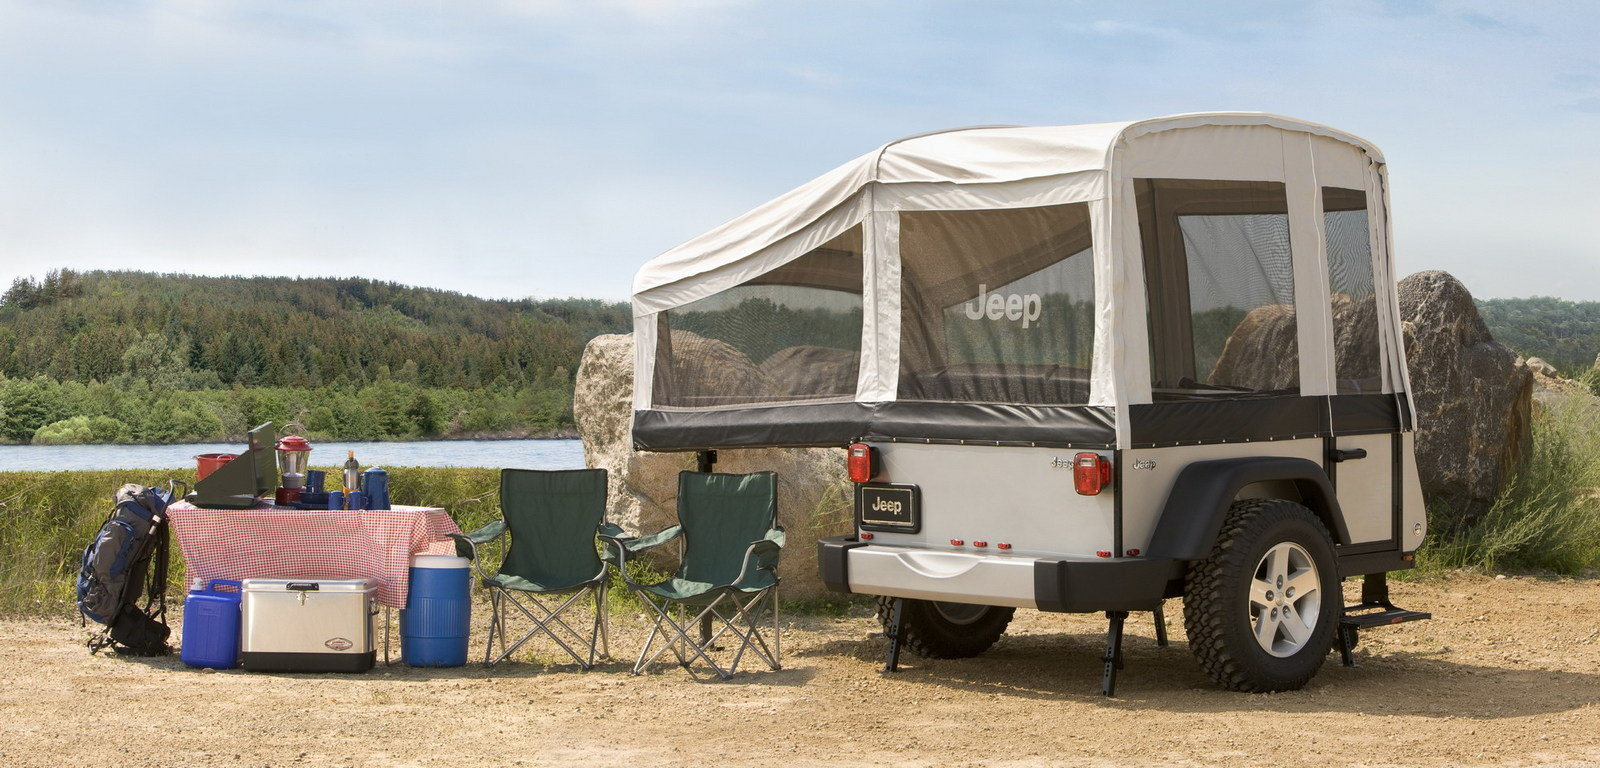 Jeep Off-road Camper Trailers From Mopar